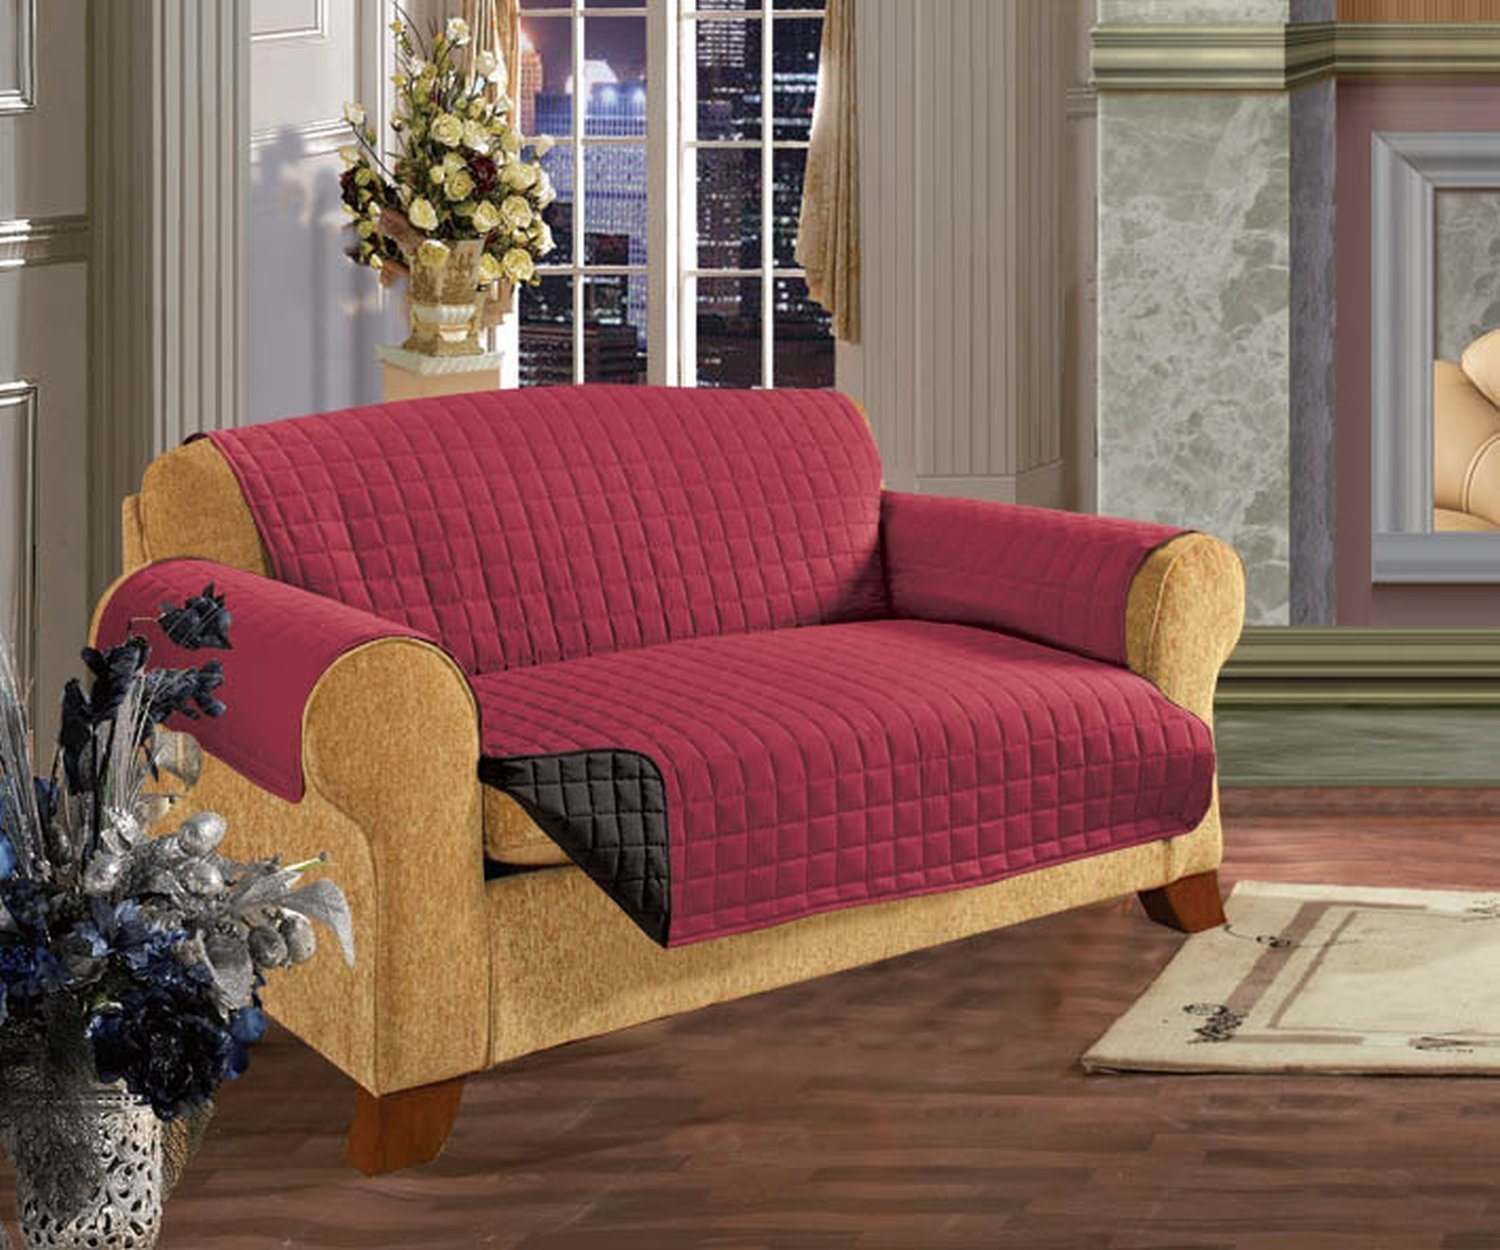 Elegant Comfort QUILTED FURNITURE PROTECTOR for Pet Dog Children Kids -2 TIES TO STOP SLIPPING OFF Treatment Microfiber As soft as Egyptian Cotton Burgundy/Black Love Seat